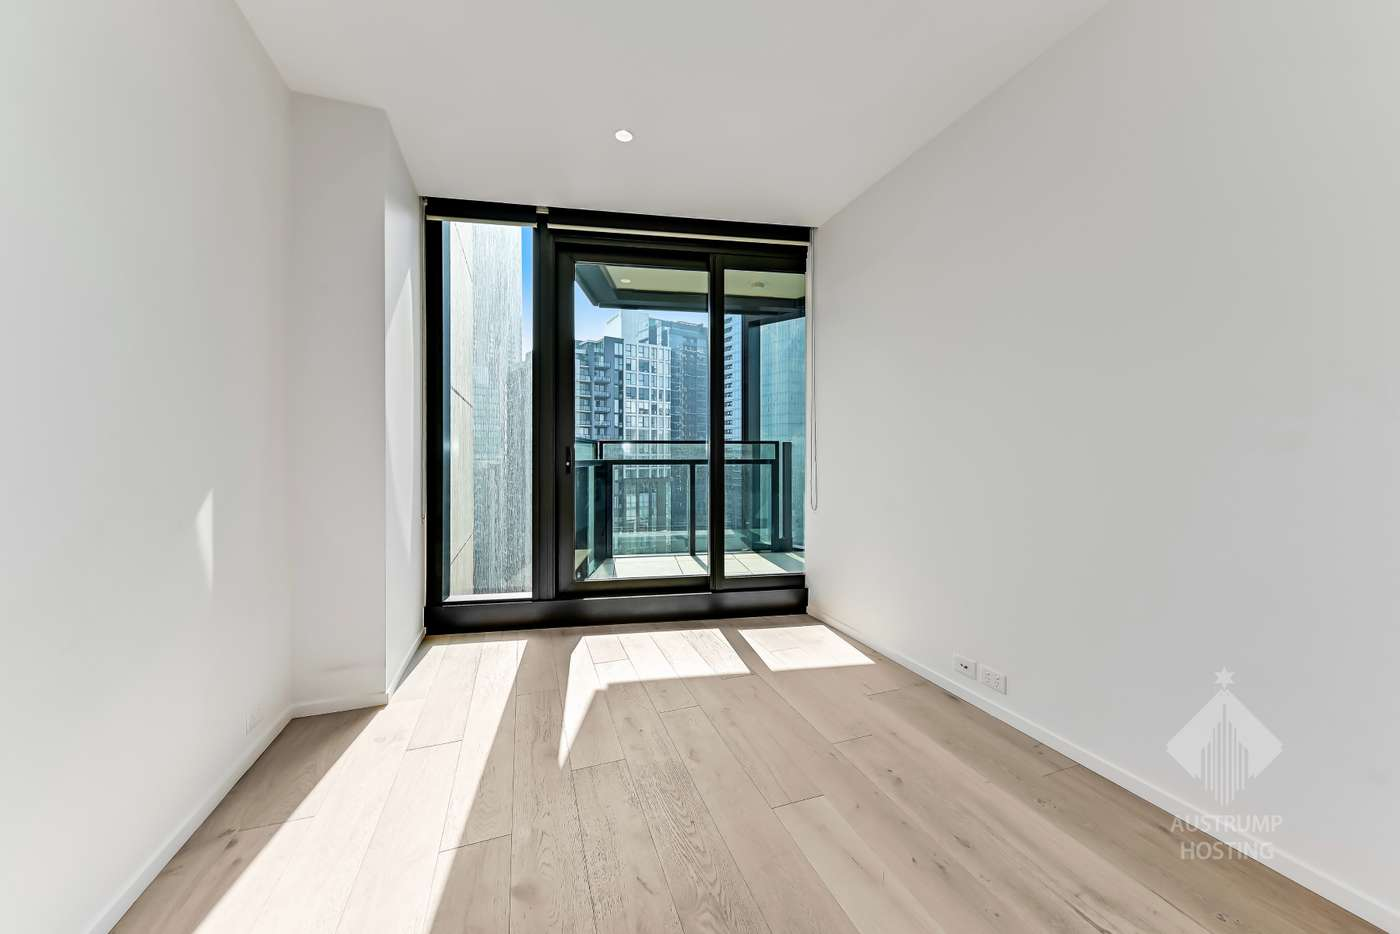 Fifth view of Homely apartment listing, 2201/18 Hoff boulevard, Southbank VIC 3006